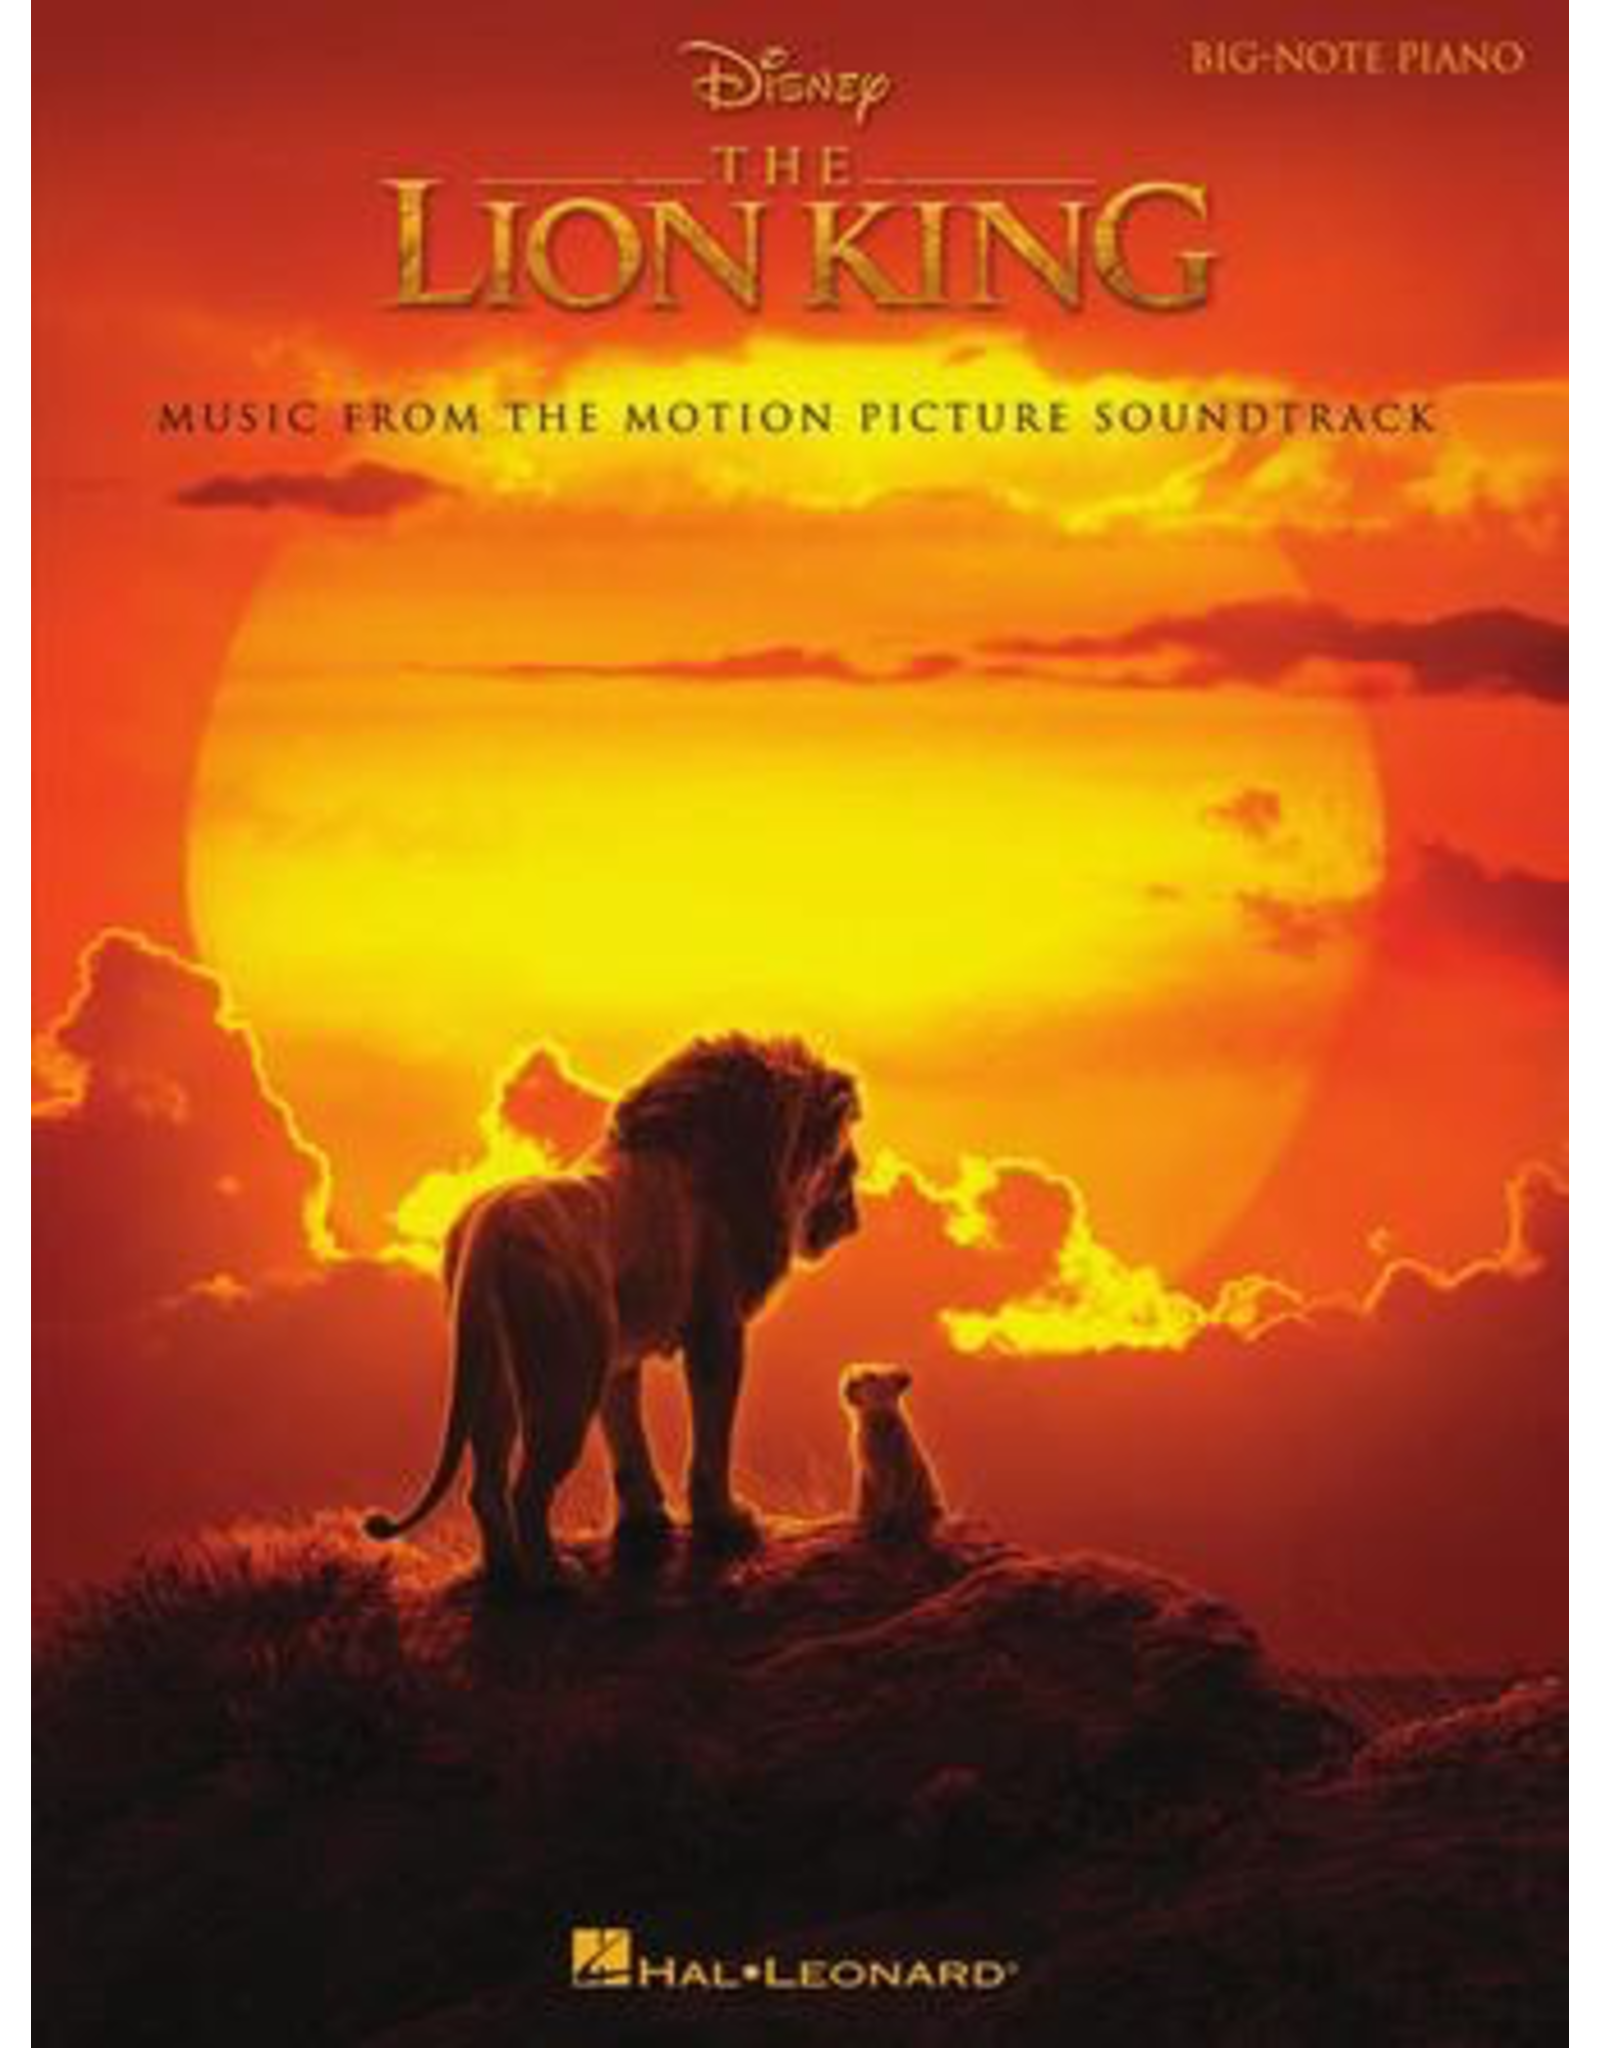 Hal Leonard The Lion King Big Note Piano - Music from the Disney Motion Picture Soundtrack